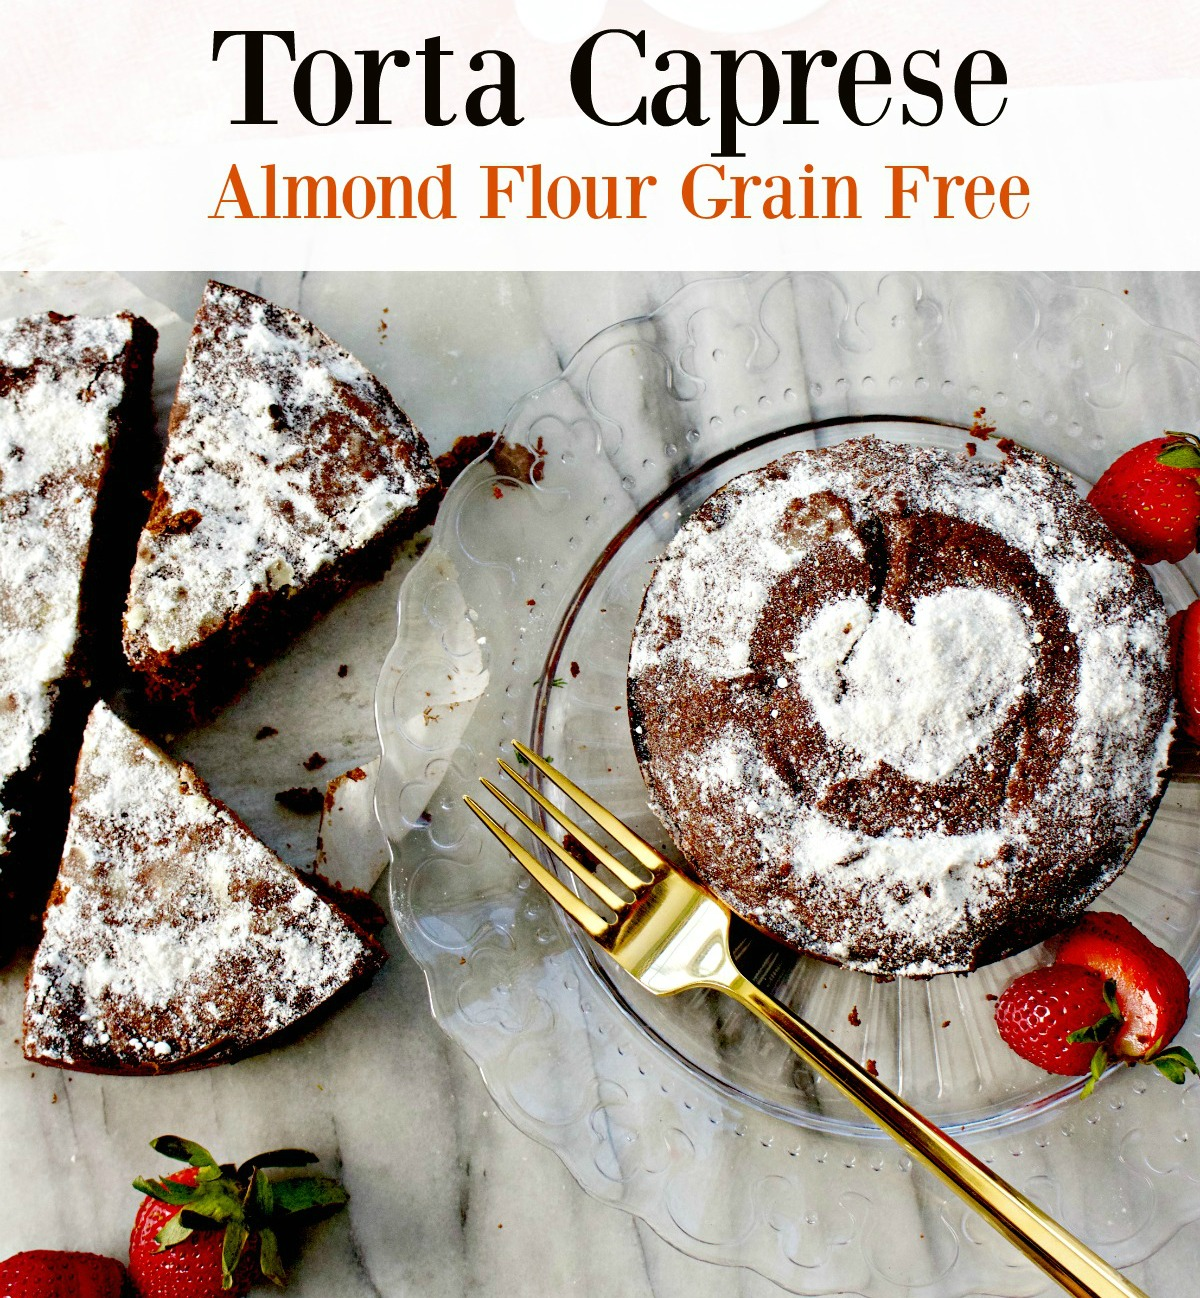 How to Make Torta Caprese, Chocolate Almond Flour Cake, Gluten Free from Spinach Tiger